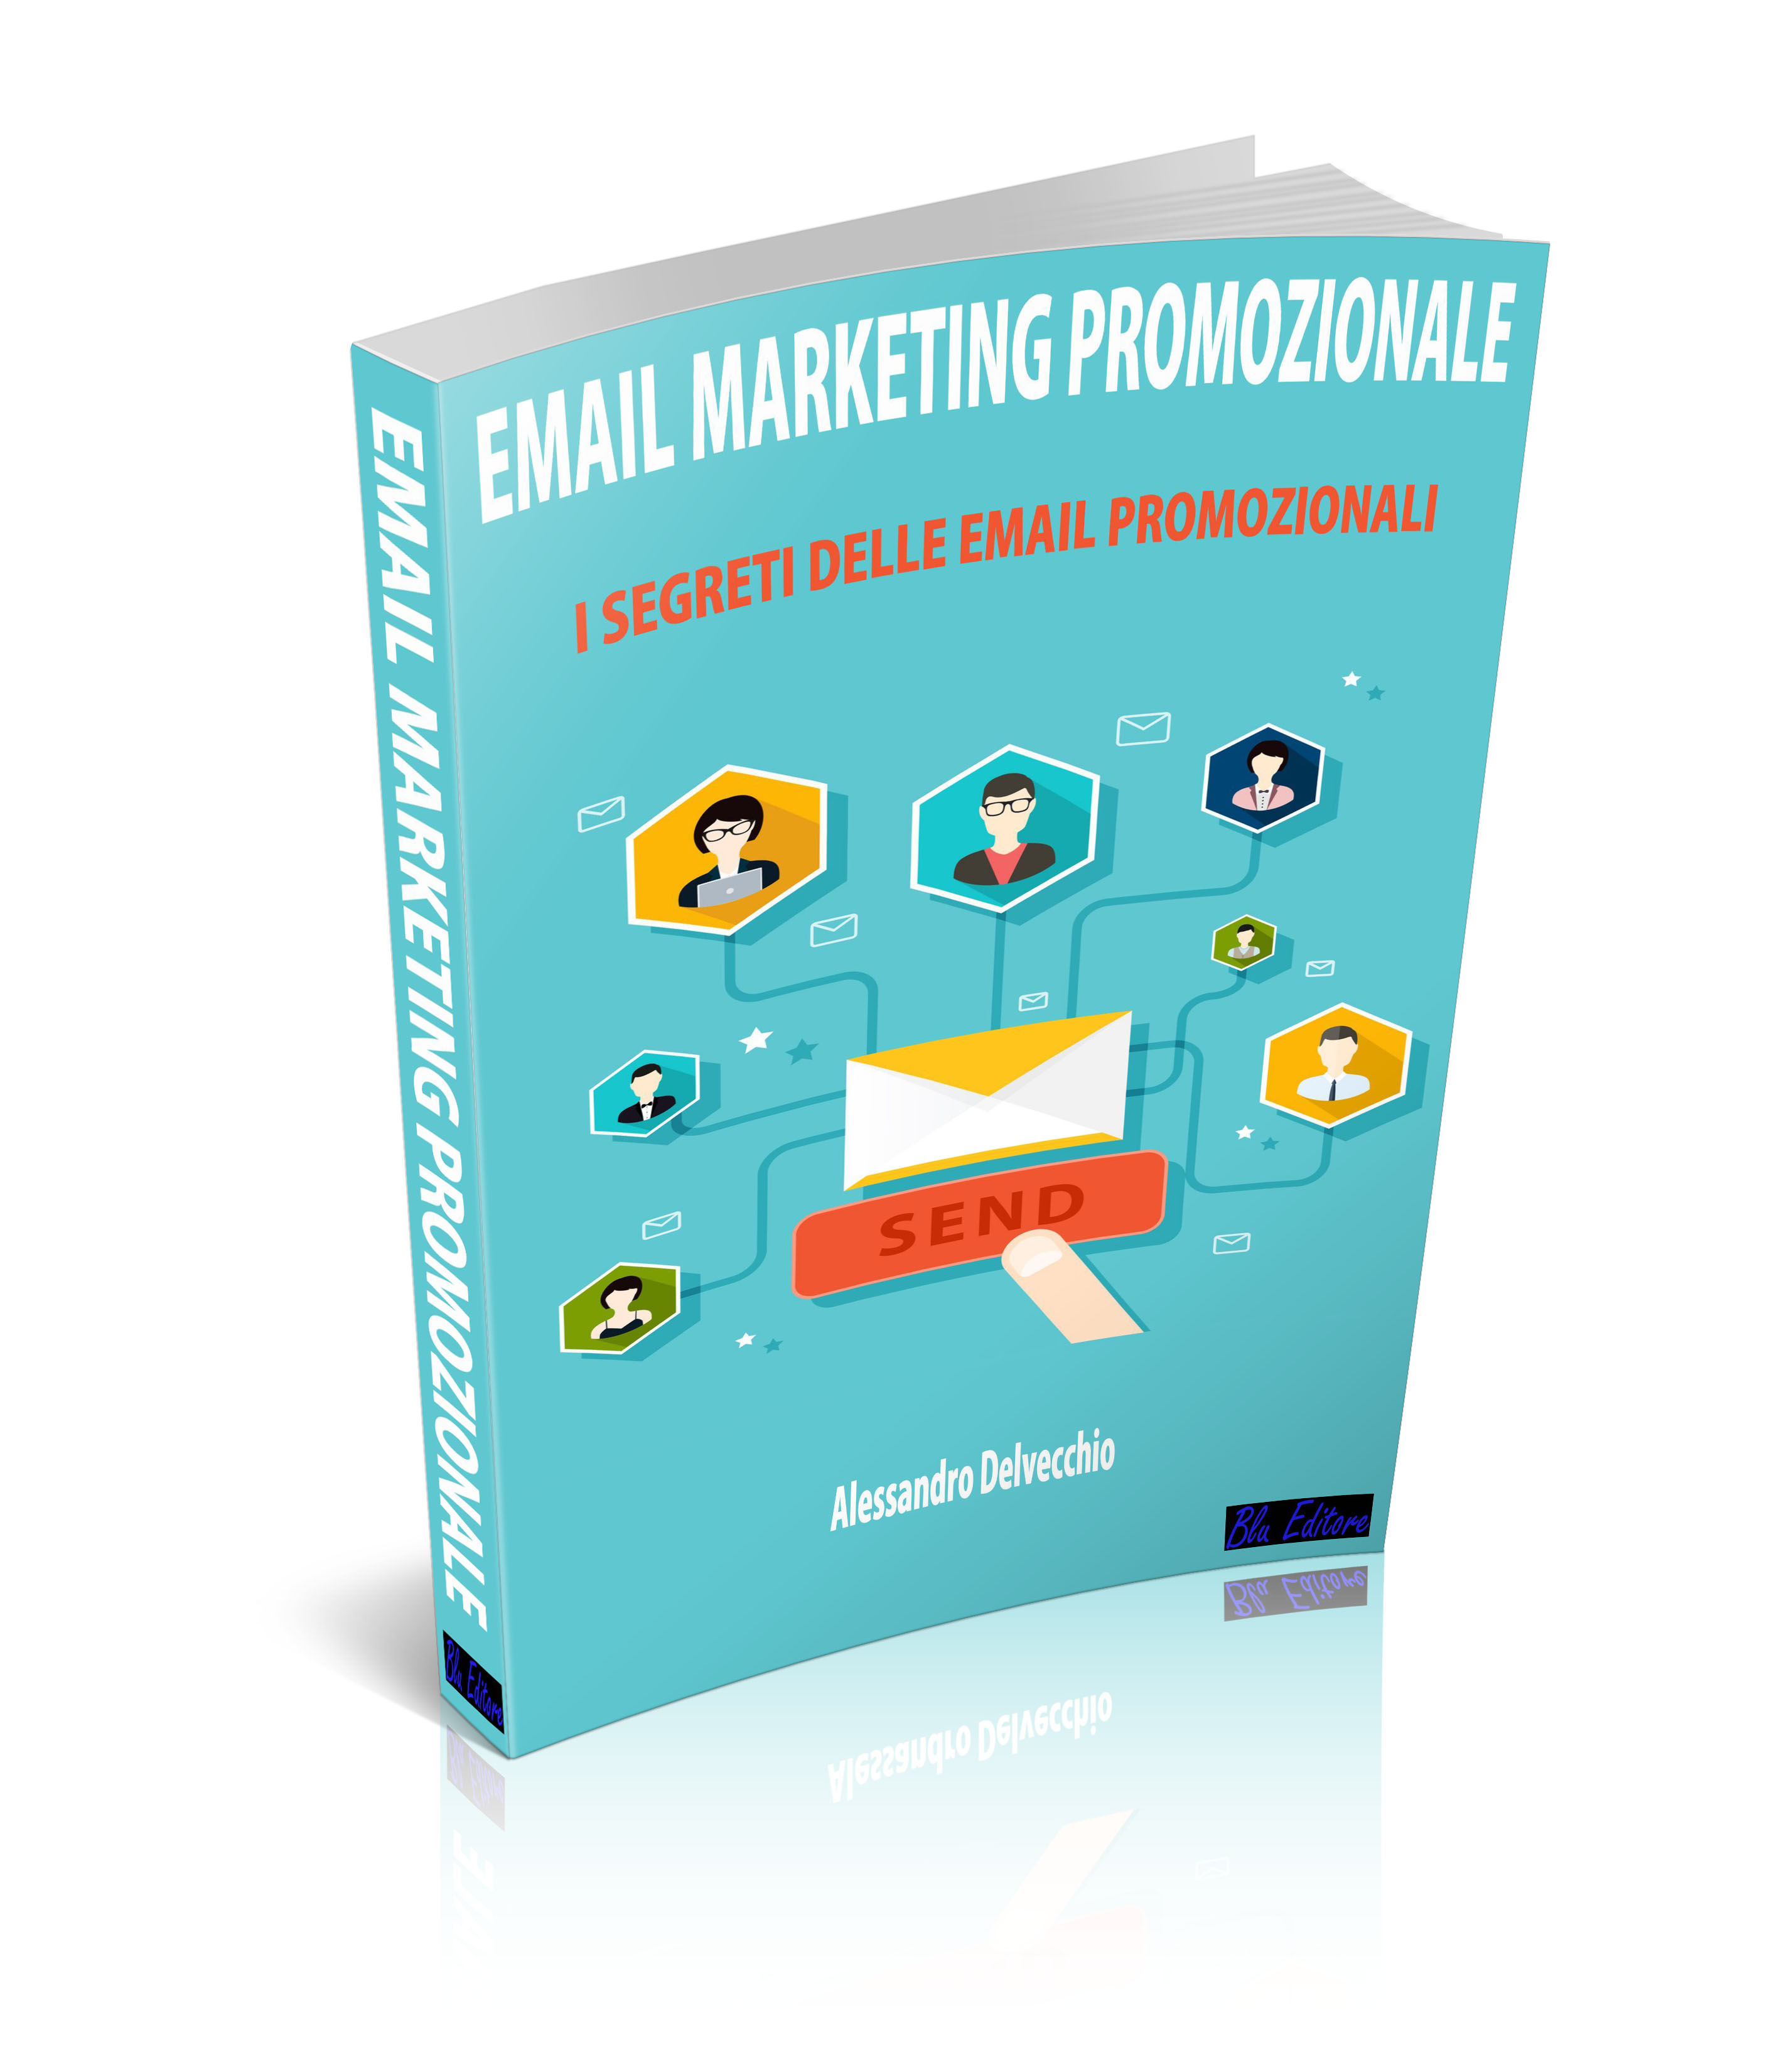 Email Marketing Promozionale